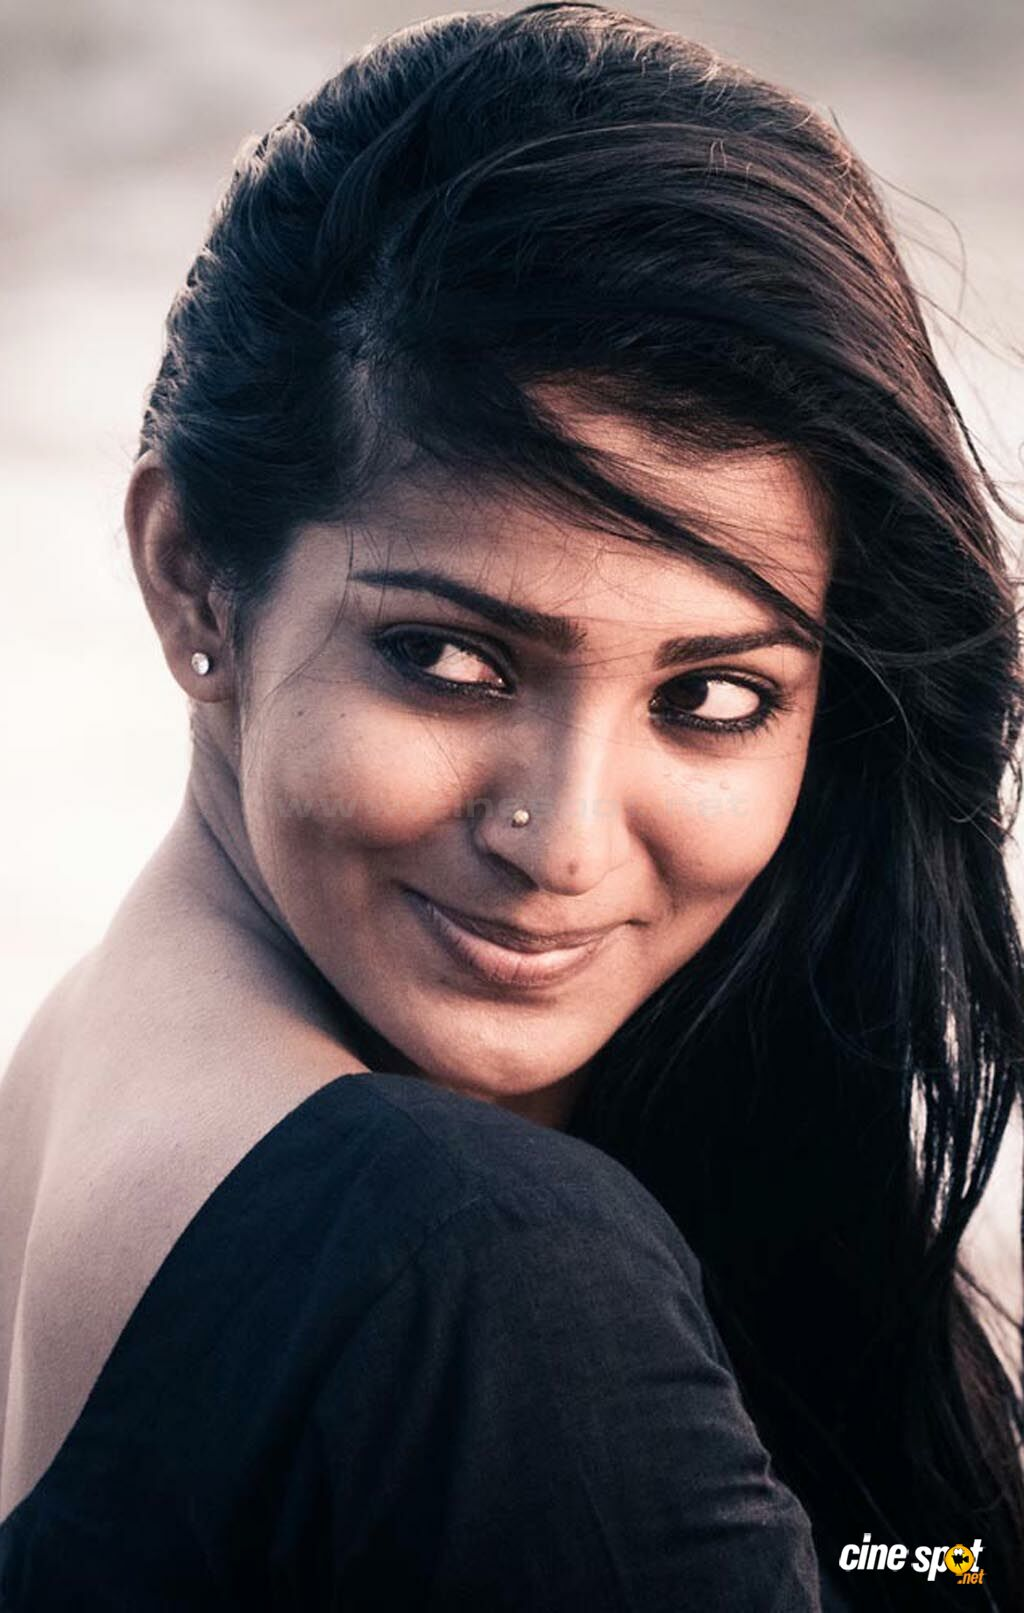 Parvati Menon Indian Film Actress very cute and hot wallpapers | Free ...